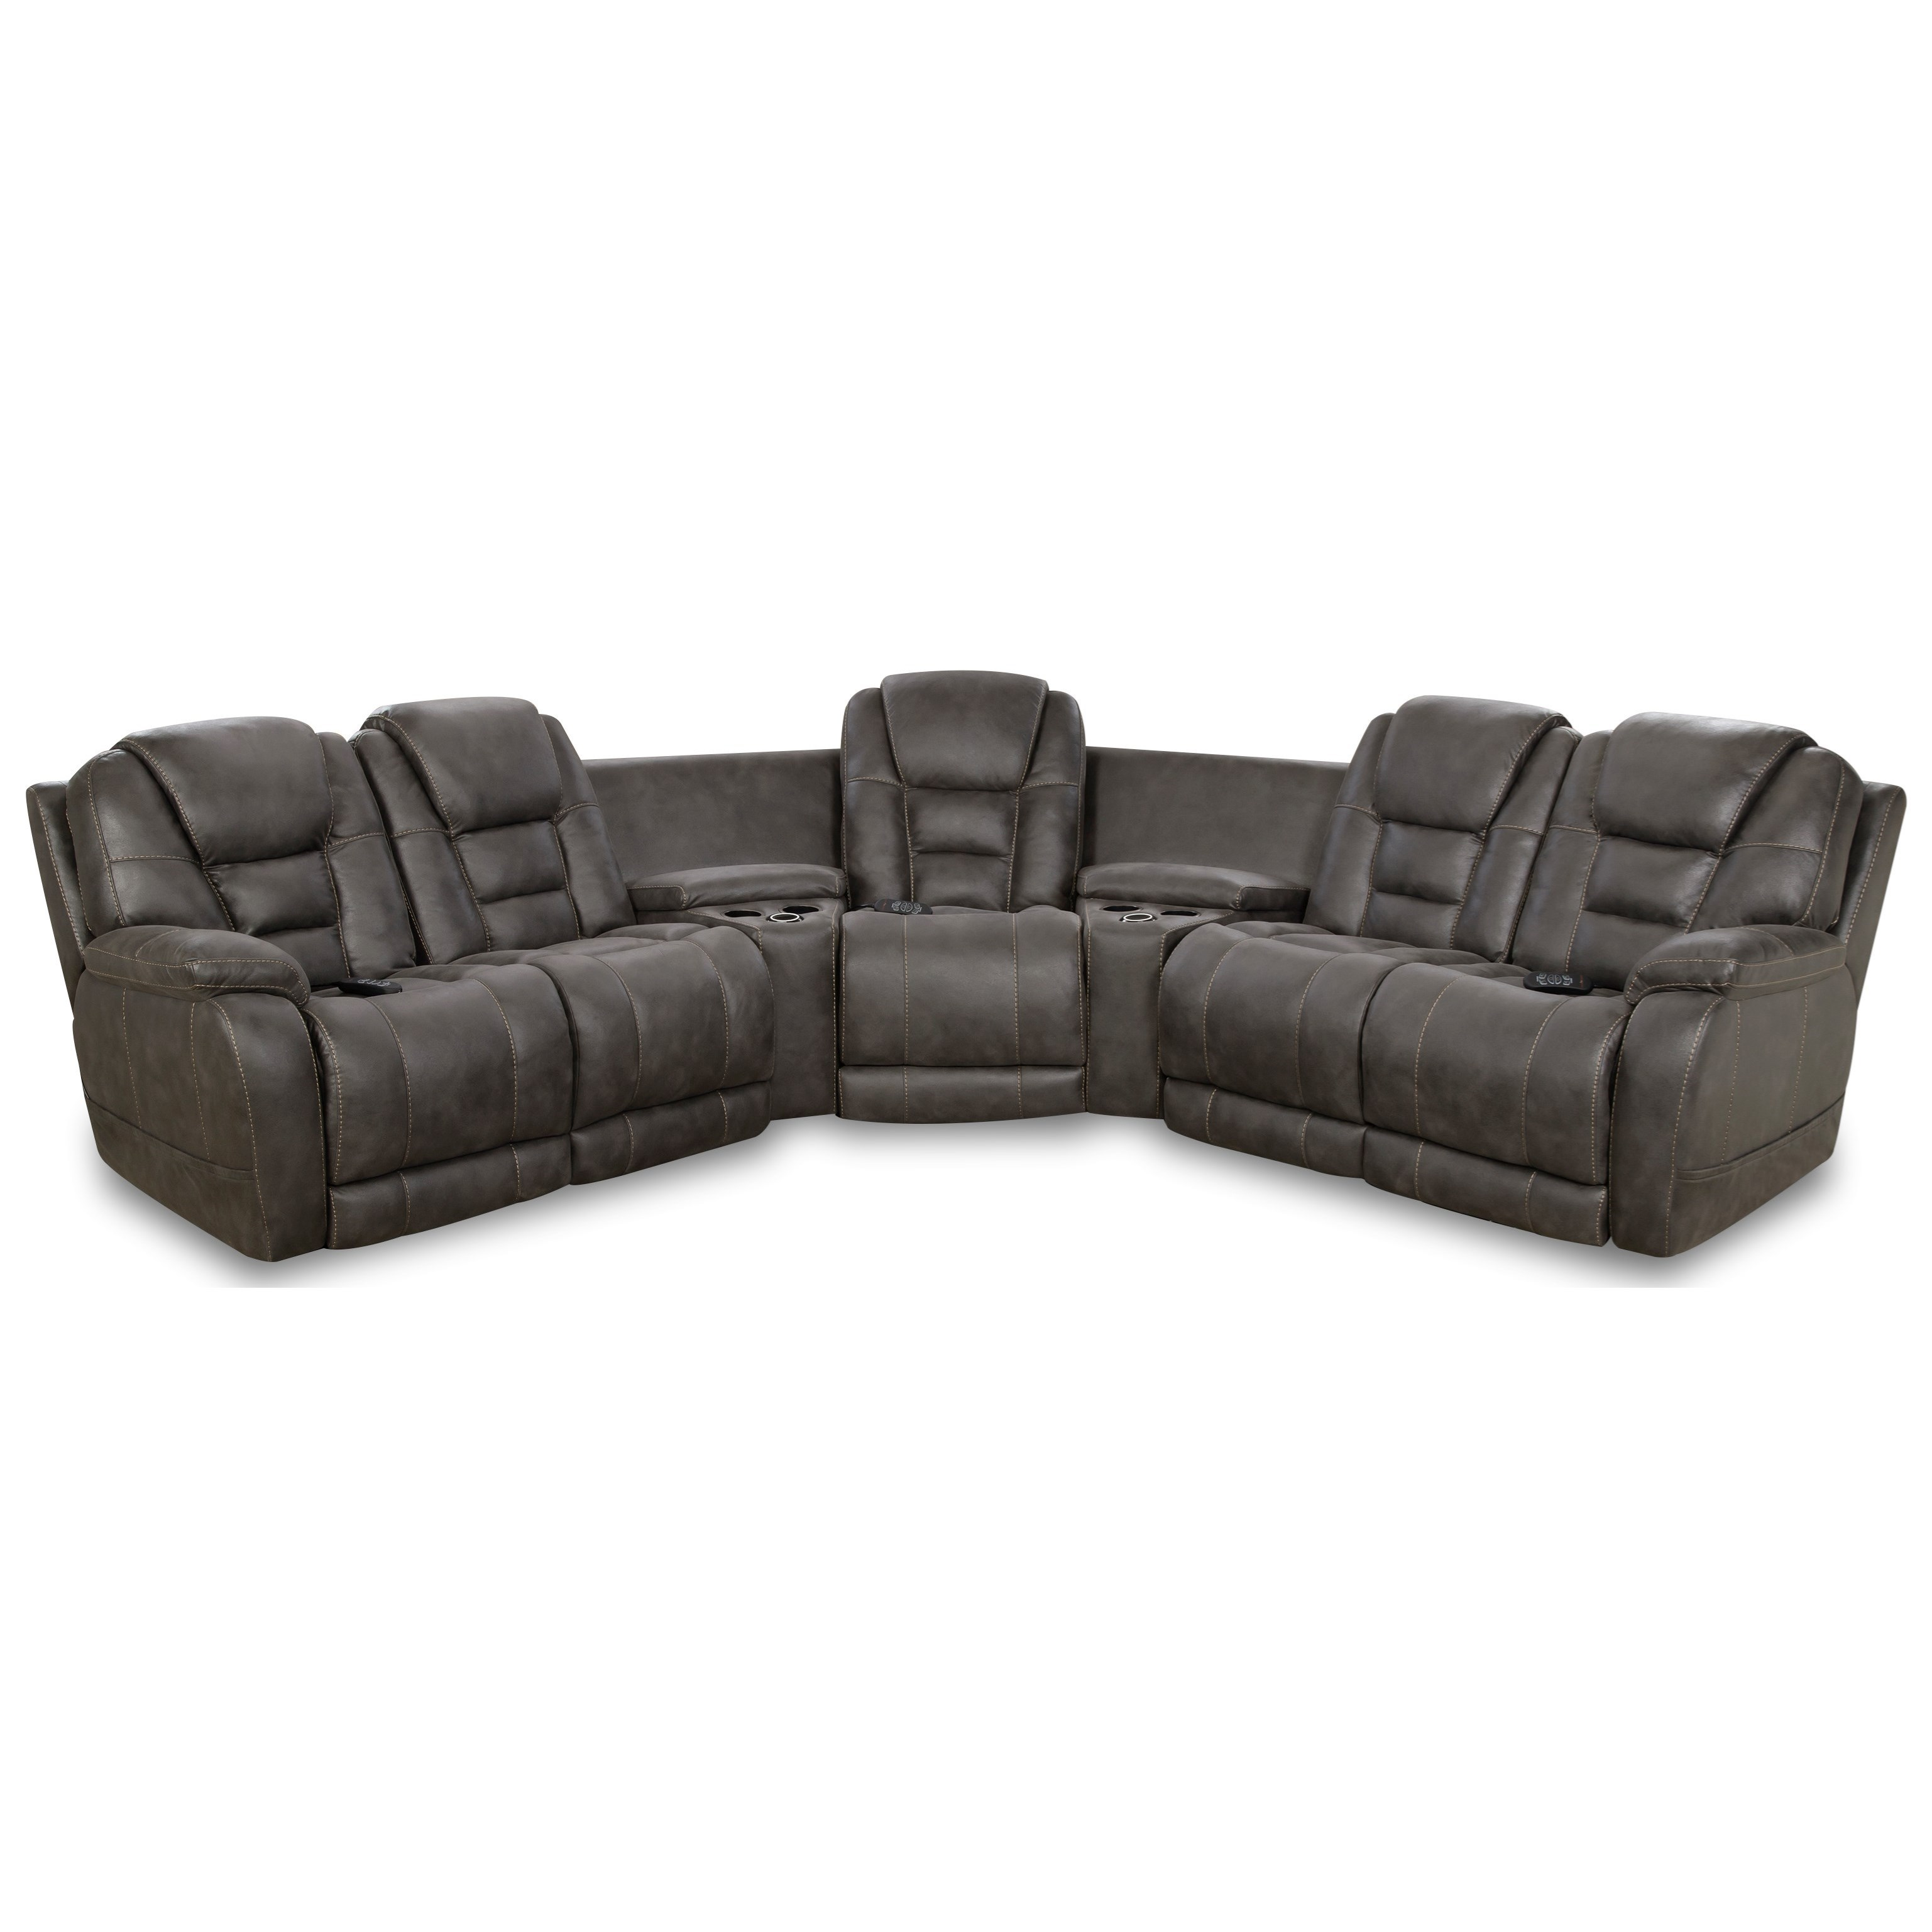 Bronco Power Sectional by HomeStretch at Turk Furniture